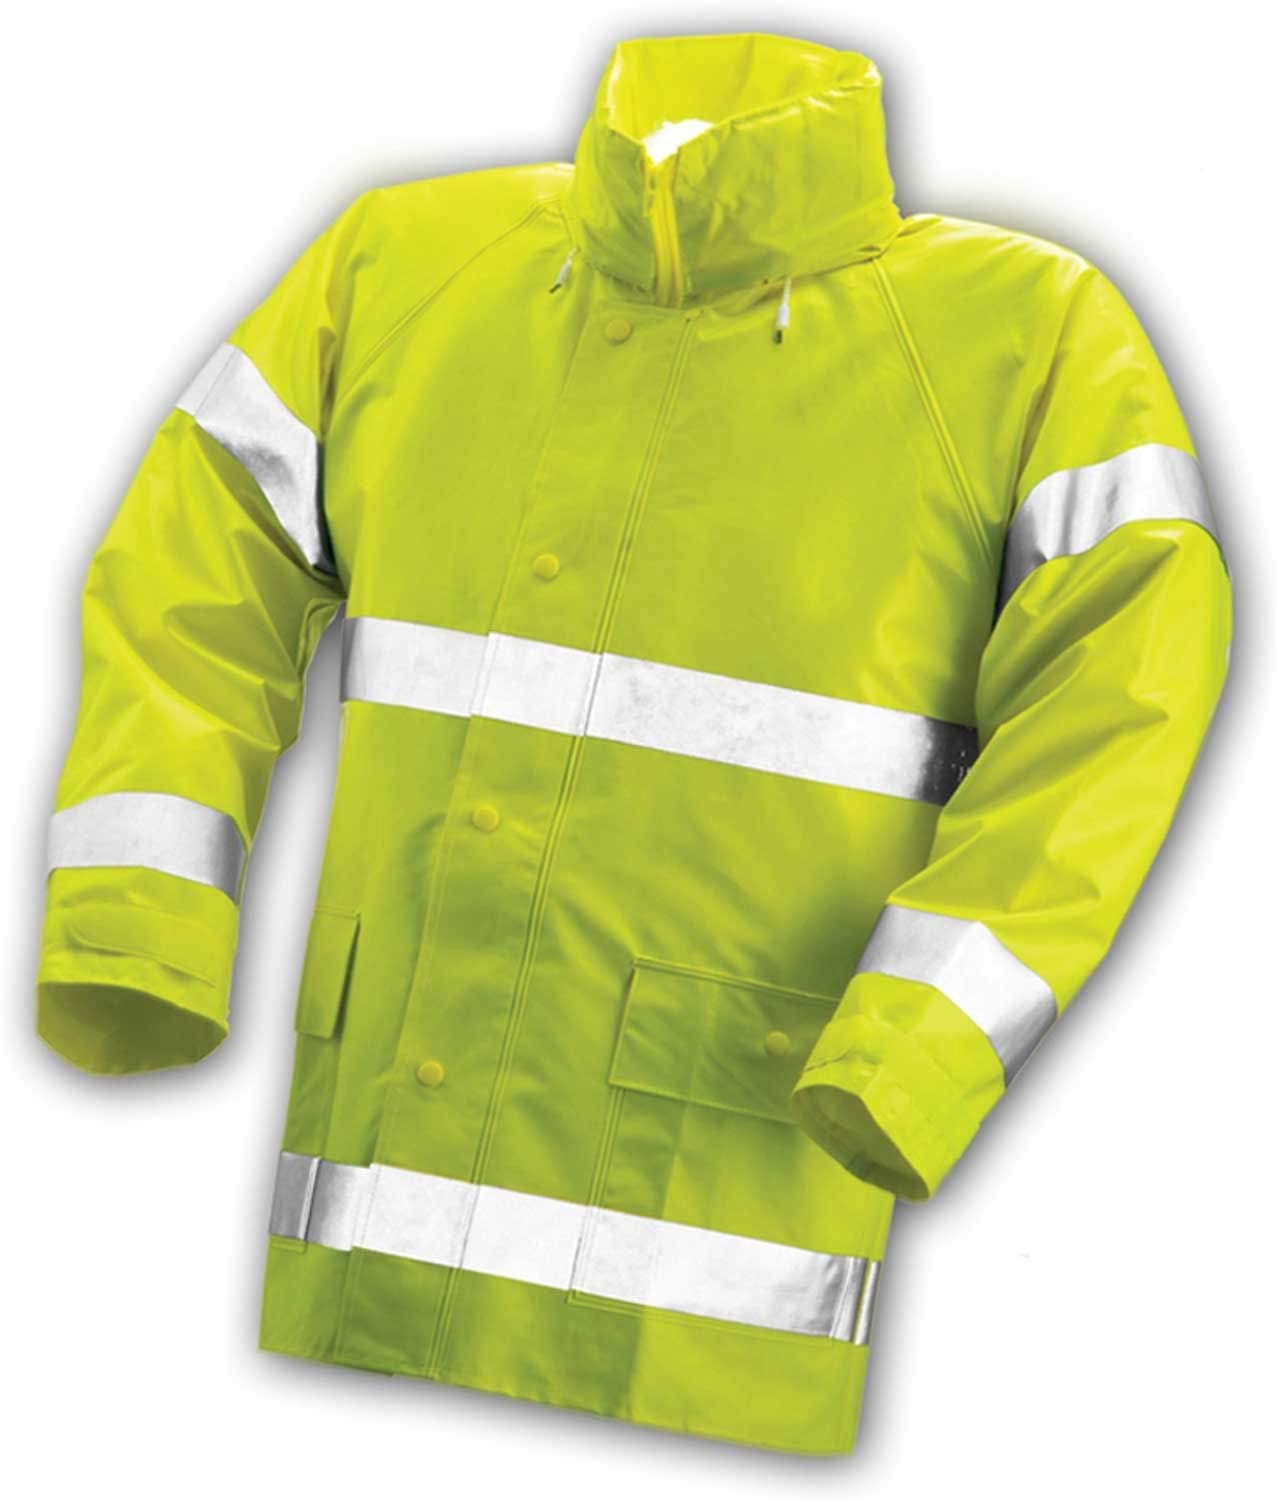 B000BQR0OW COMFORT-BRITE J53122.LG .35mm Hi-Visibility Jacket with Reflective Tape, Large, Fluorescent Lime/Yellow 61zABENk8RL